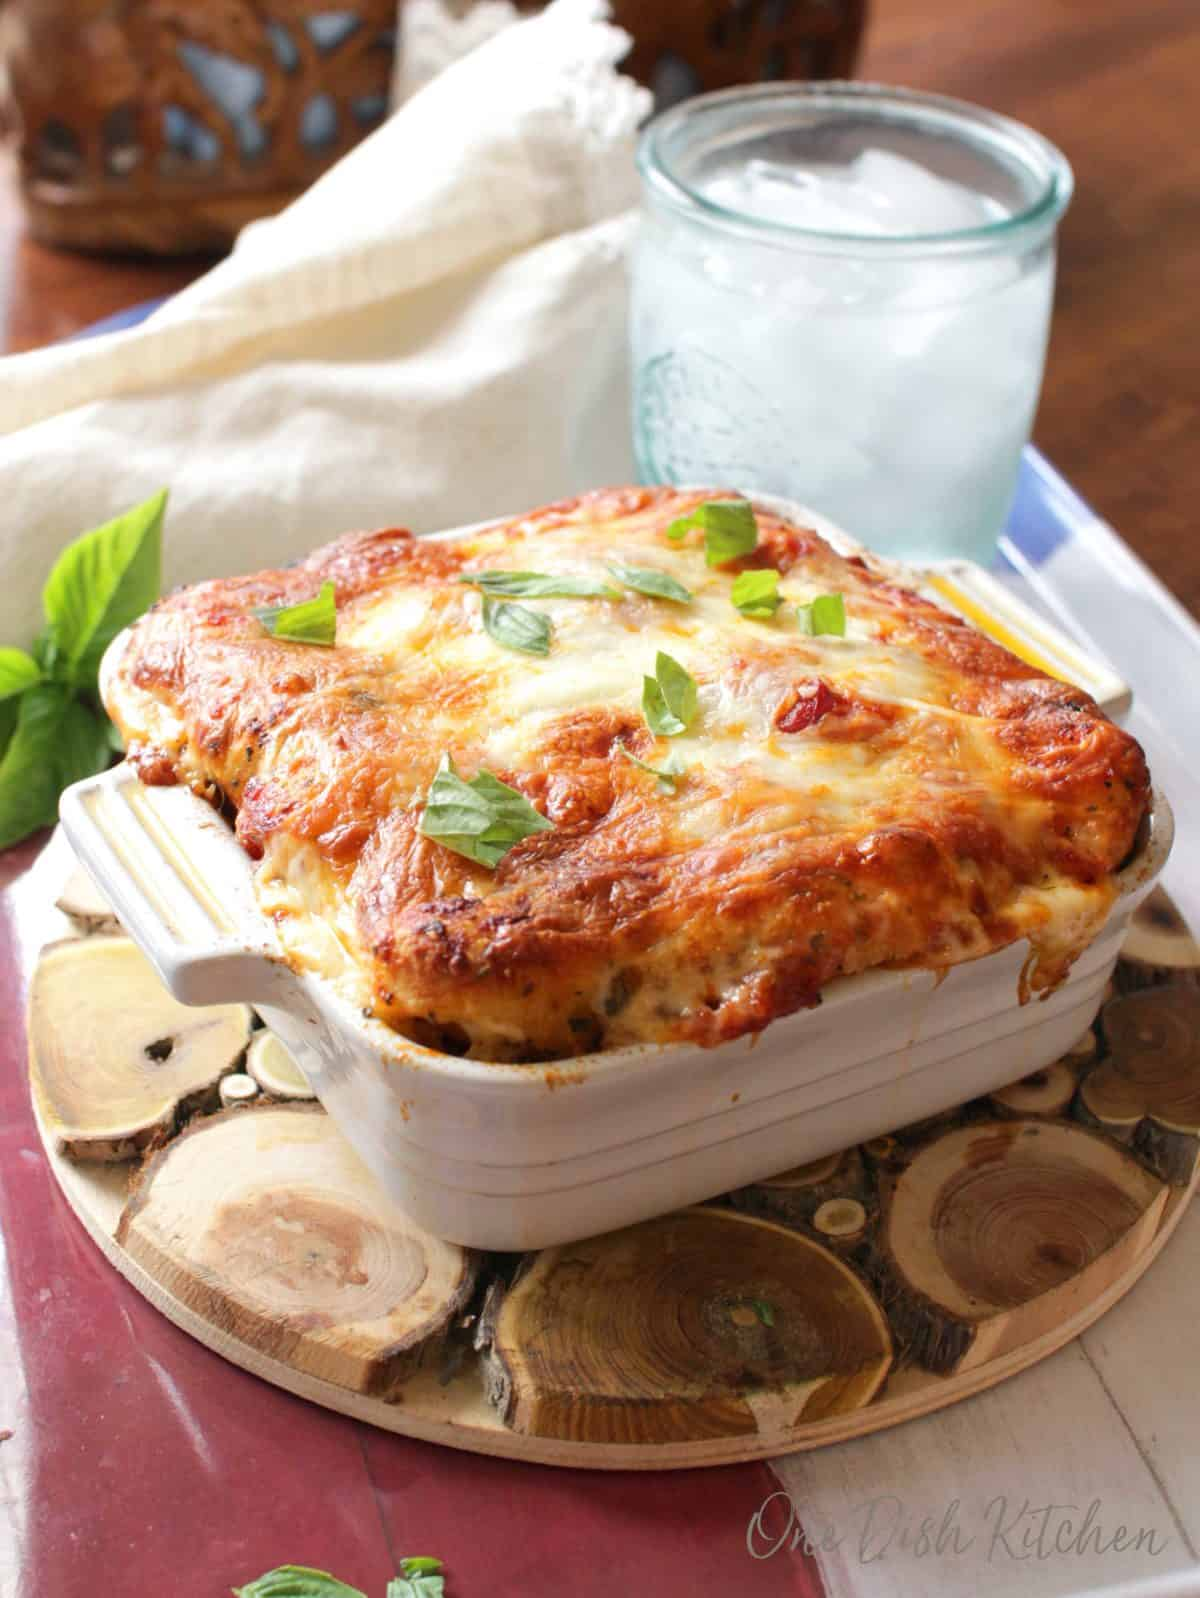 a white dish filled with balls of dough topped with mozzarella cheese.